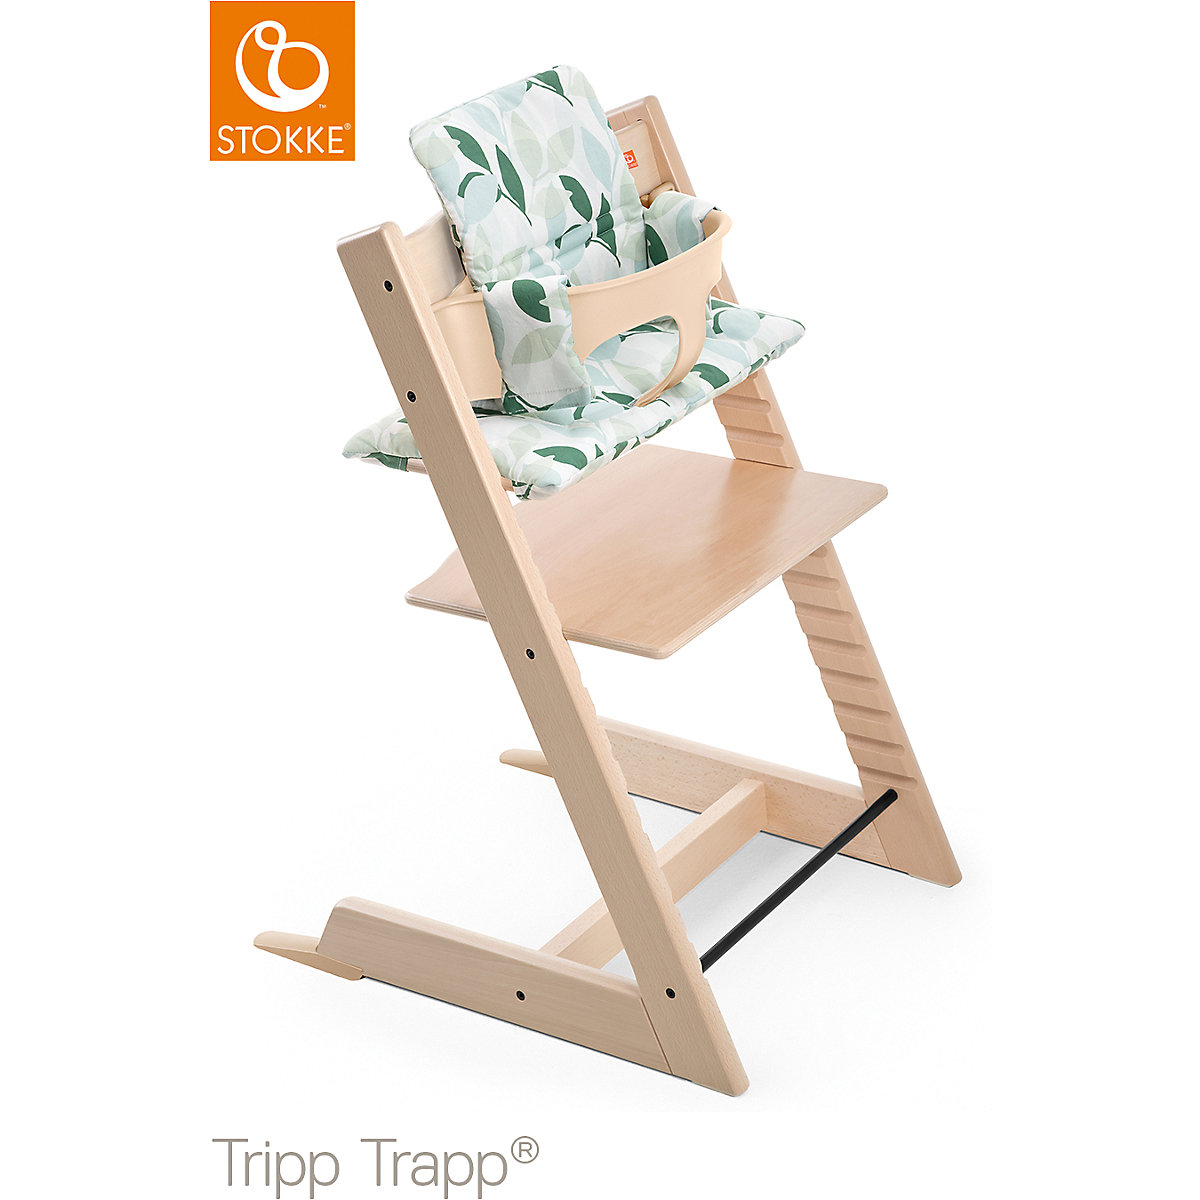 tripp trapp sitzkissen green forest beschichtet stokke mytoys. Black Bedroom Furniture Sets. Home Design Ideas